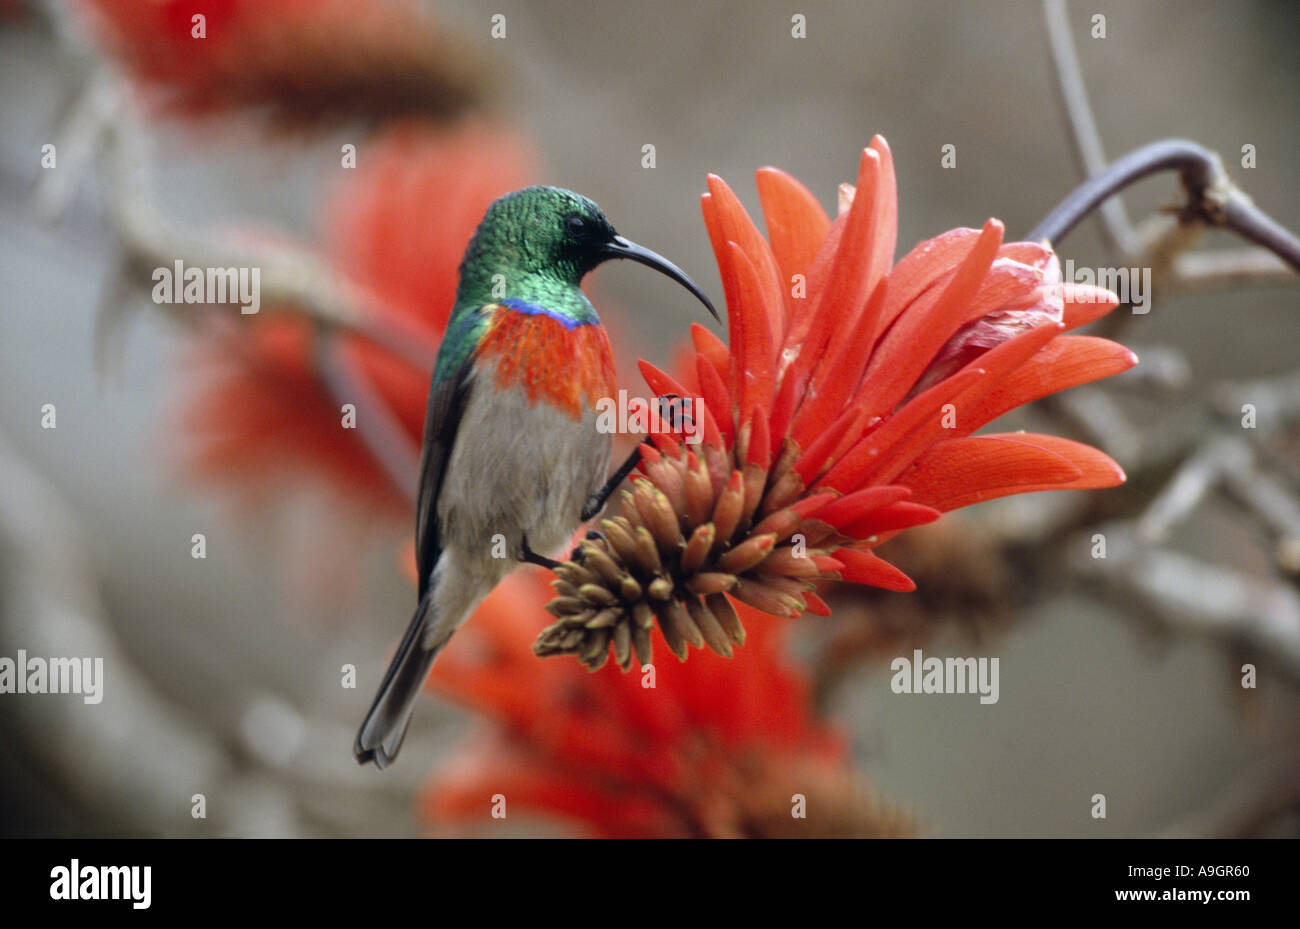 greater double-collared sunbird (Nectarinia afra), male, feeding on a flower of the Red hot poker tree, South Africa, Stock Photo